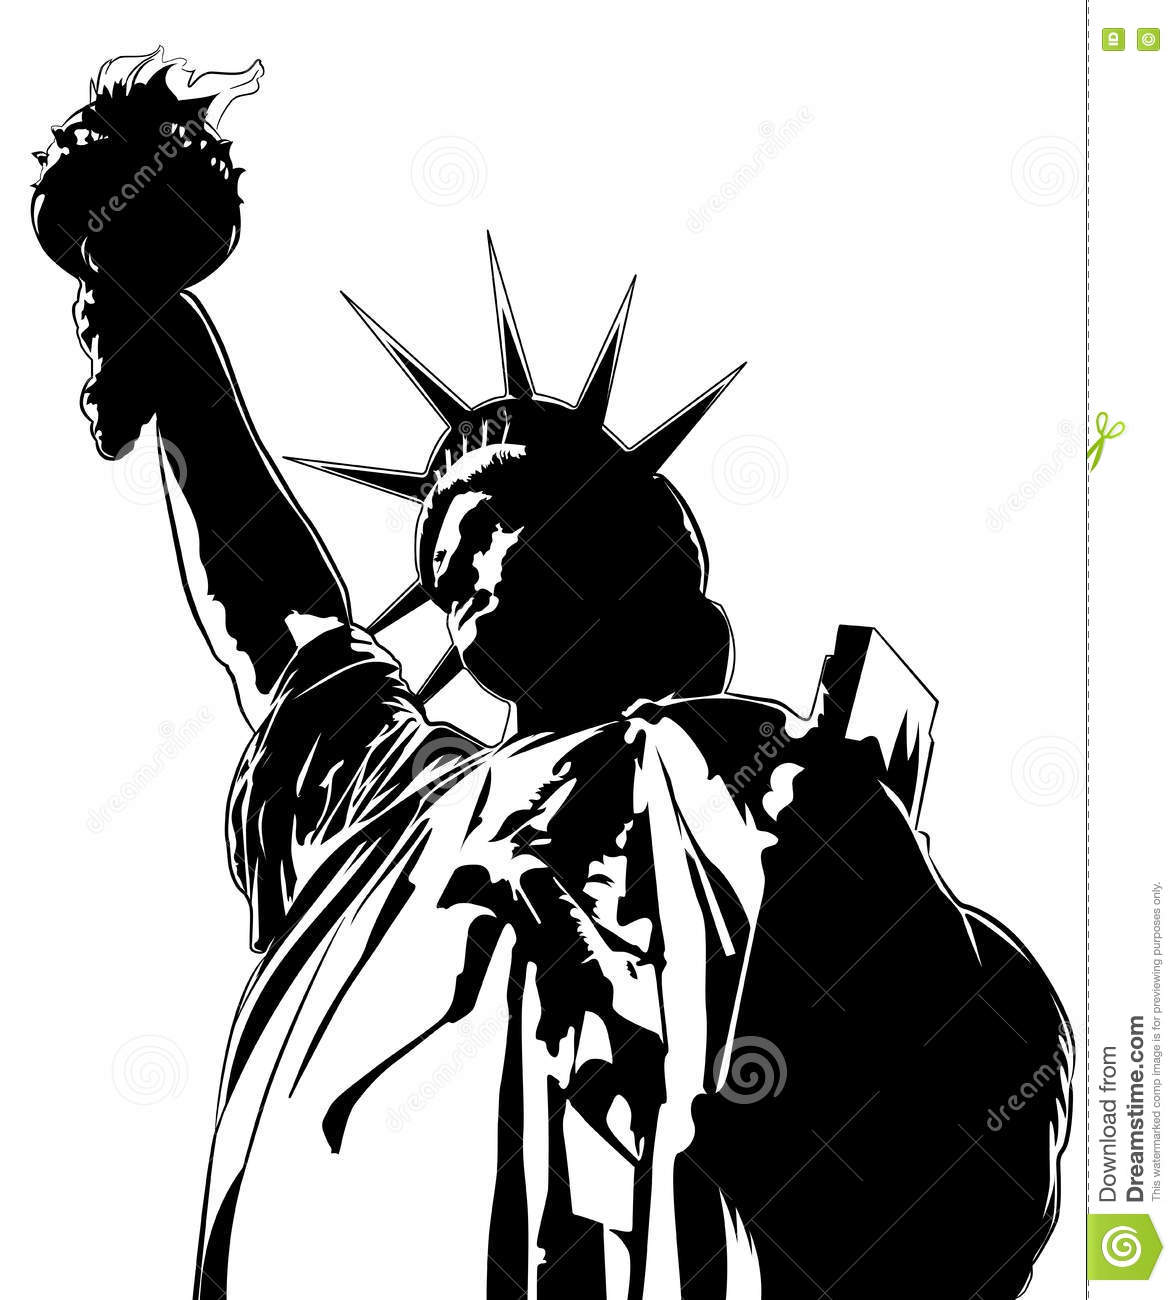 statue of liberty vector image stock vector illustration of rh dreamstime com statue of liberty vector art statue of liberty vector art free